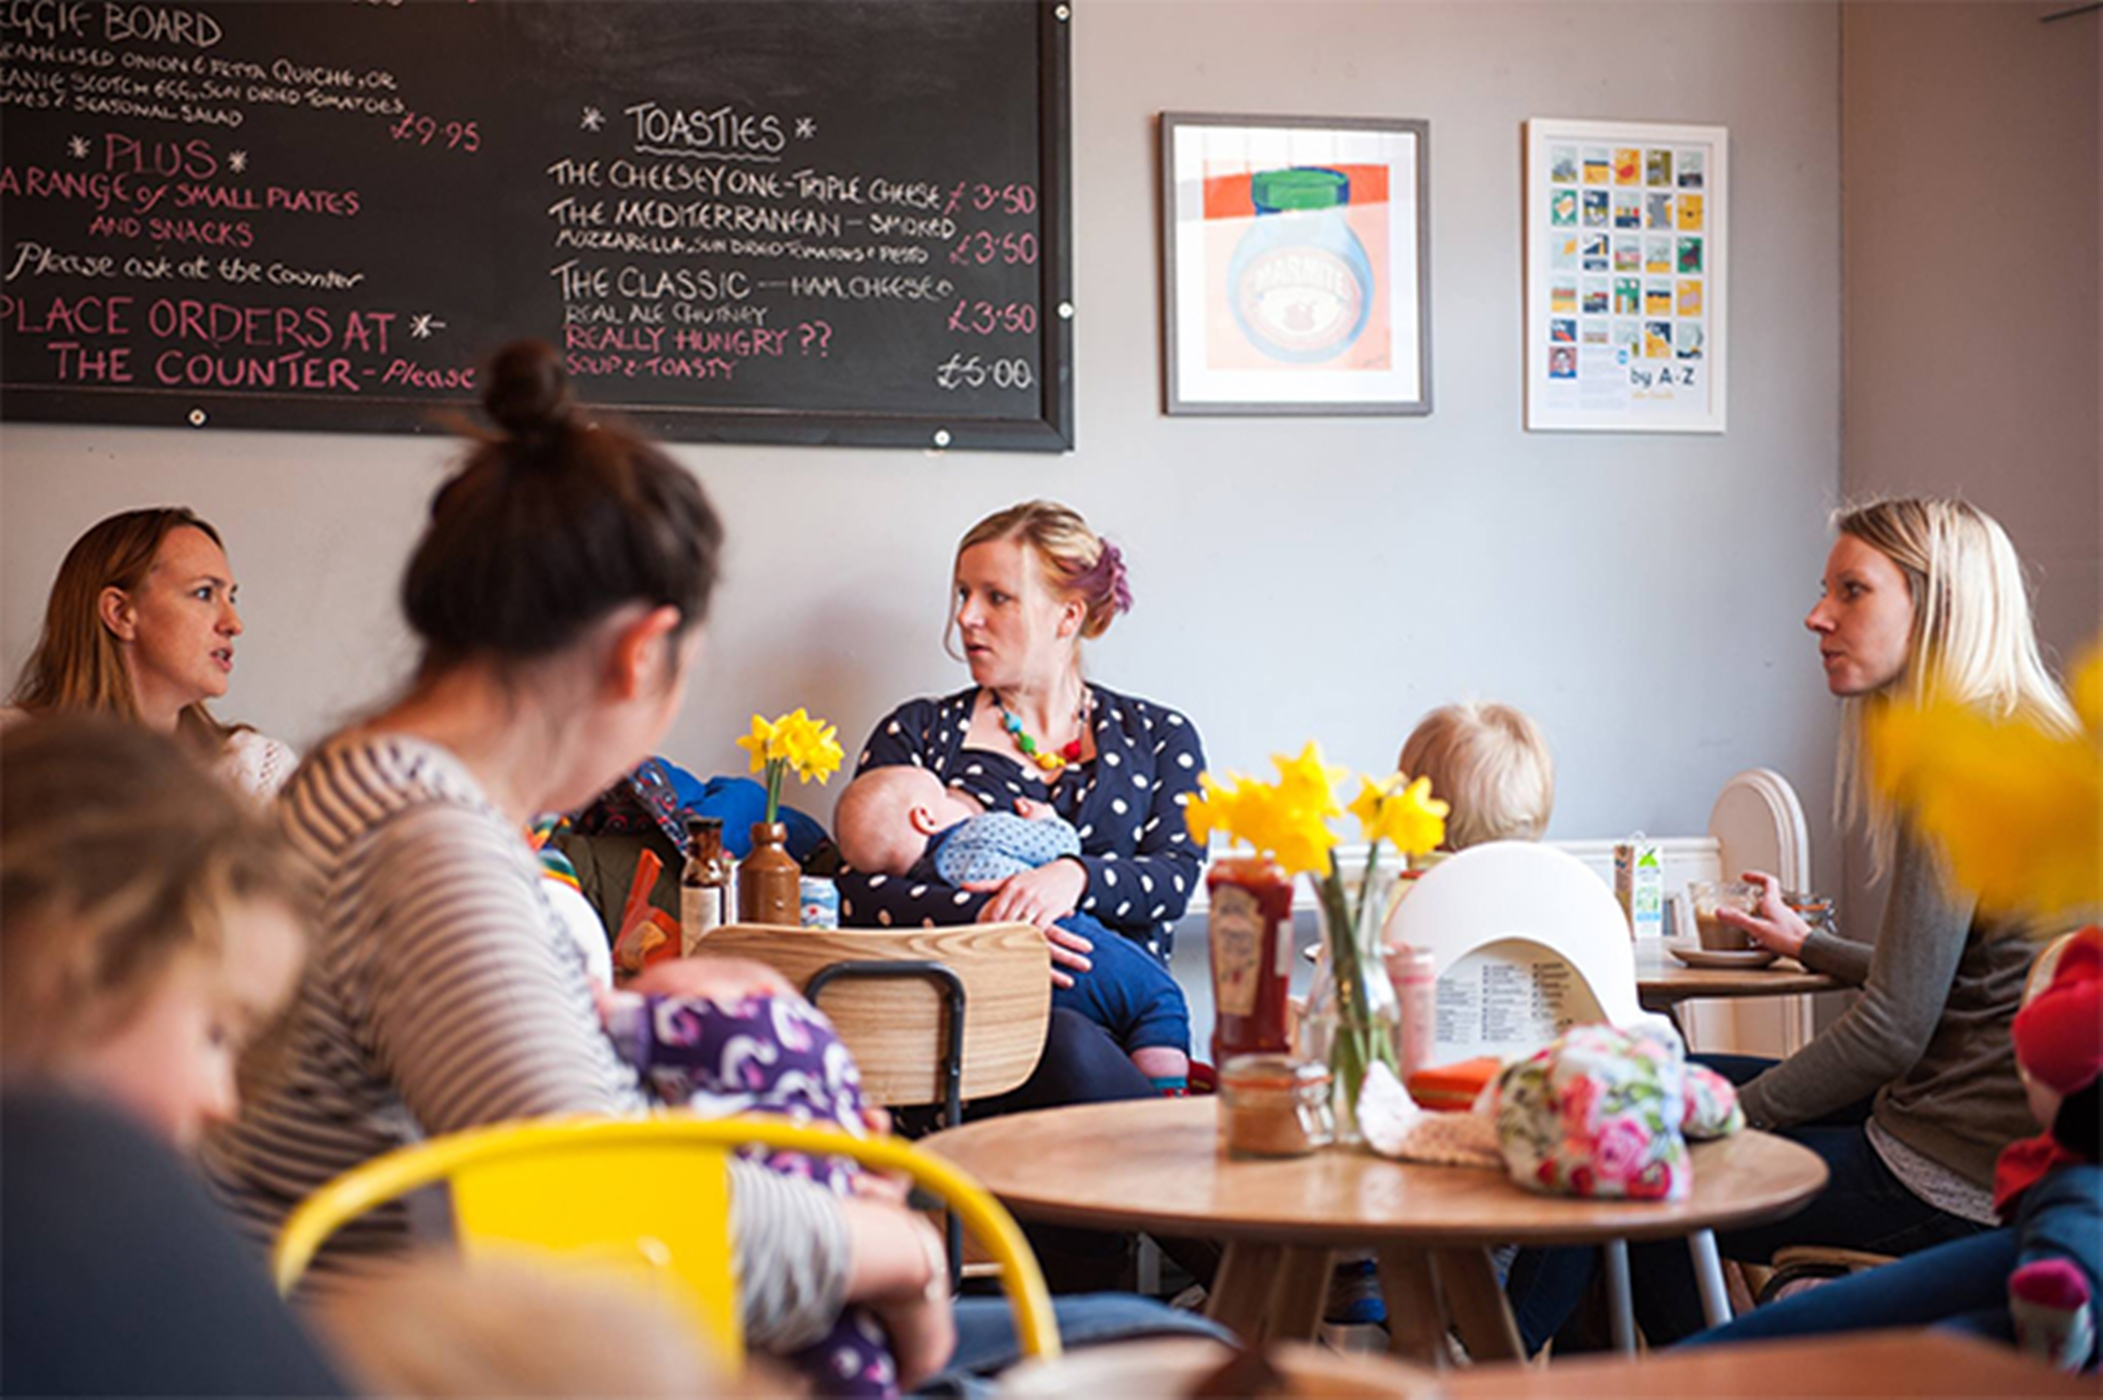 breastfeeding mothers sit in a cafe chatting, vases of yellow daffodils at the tables